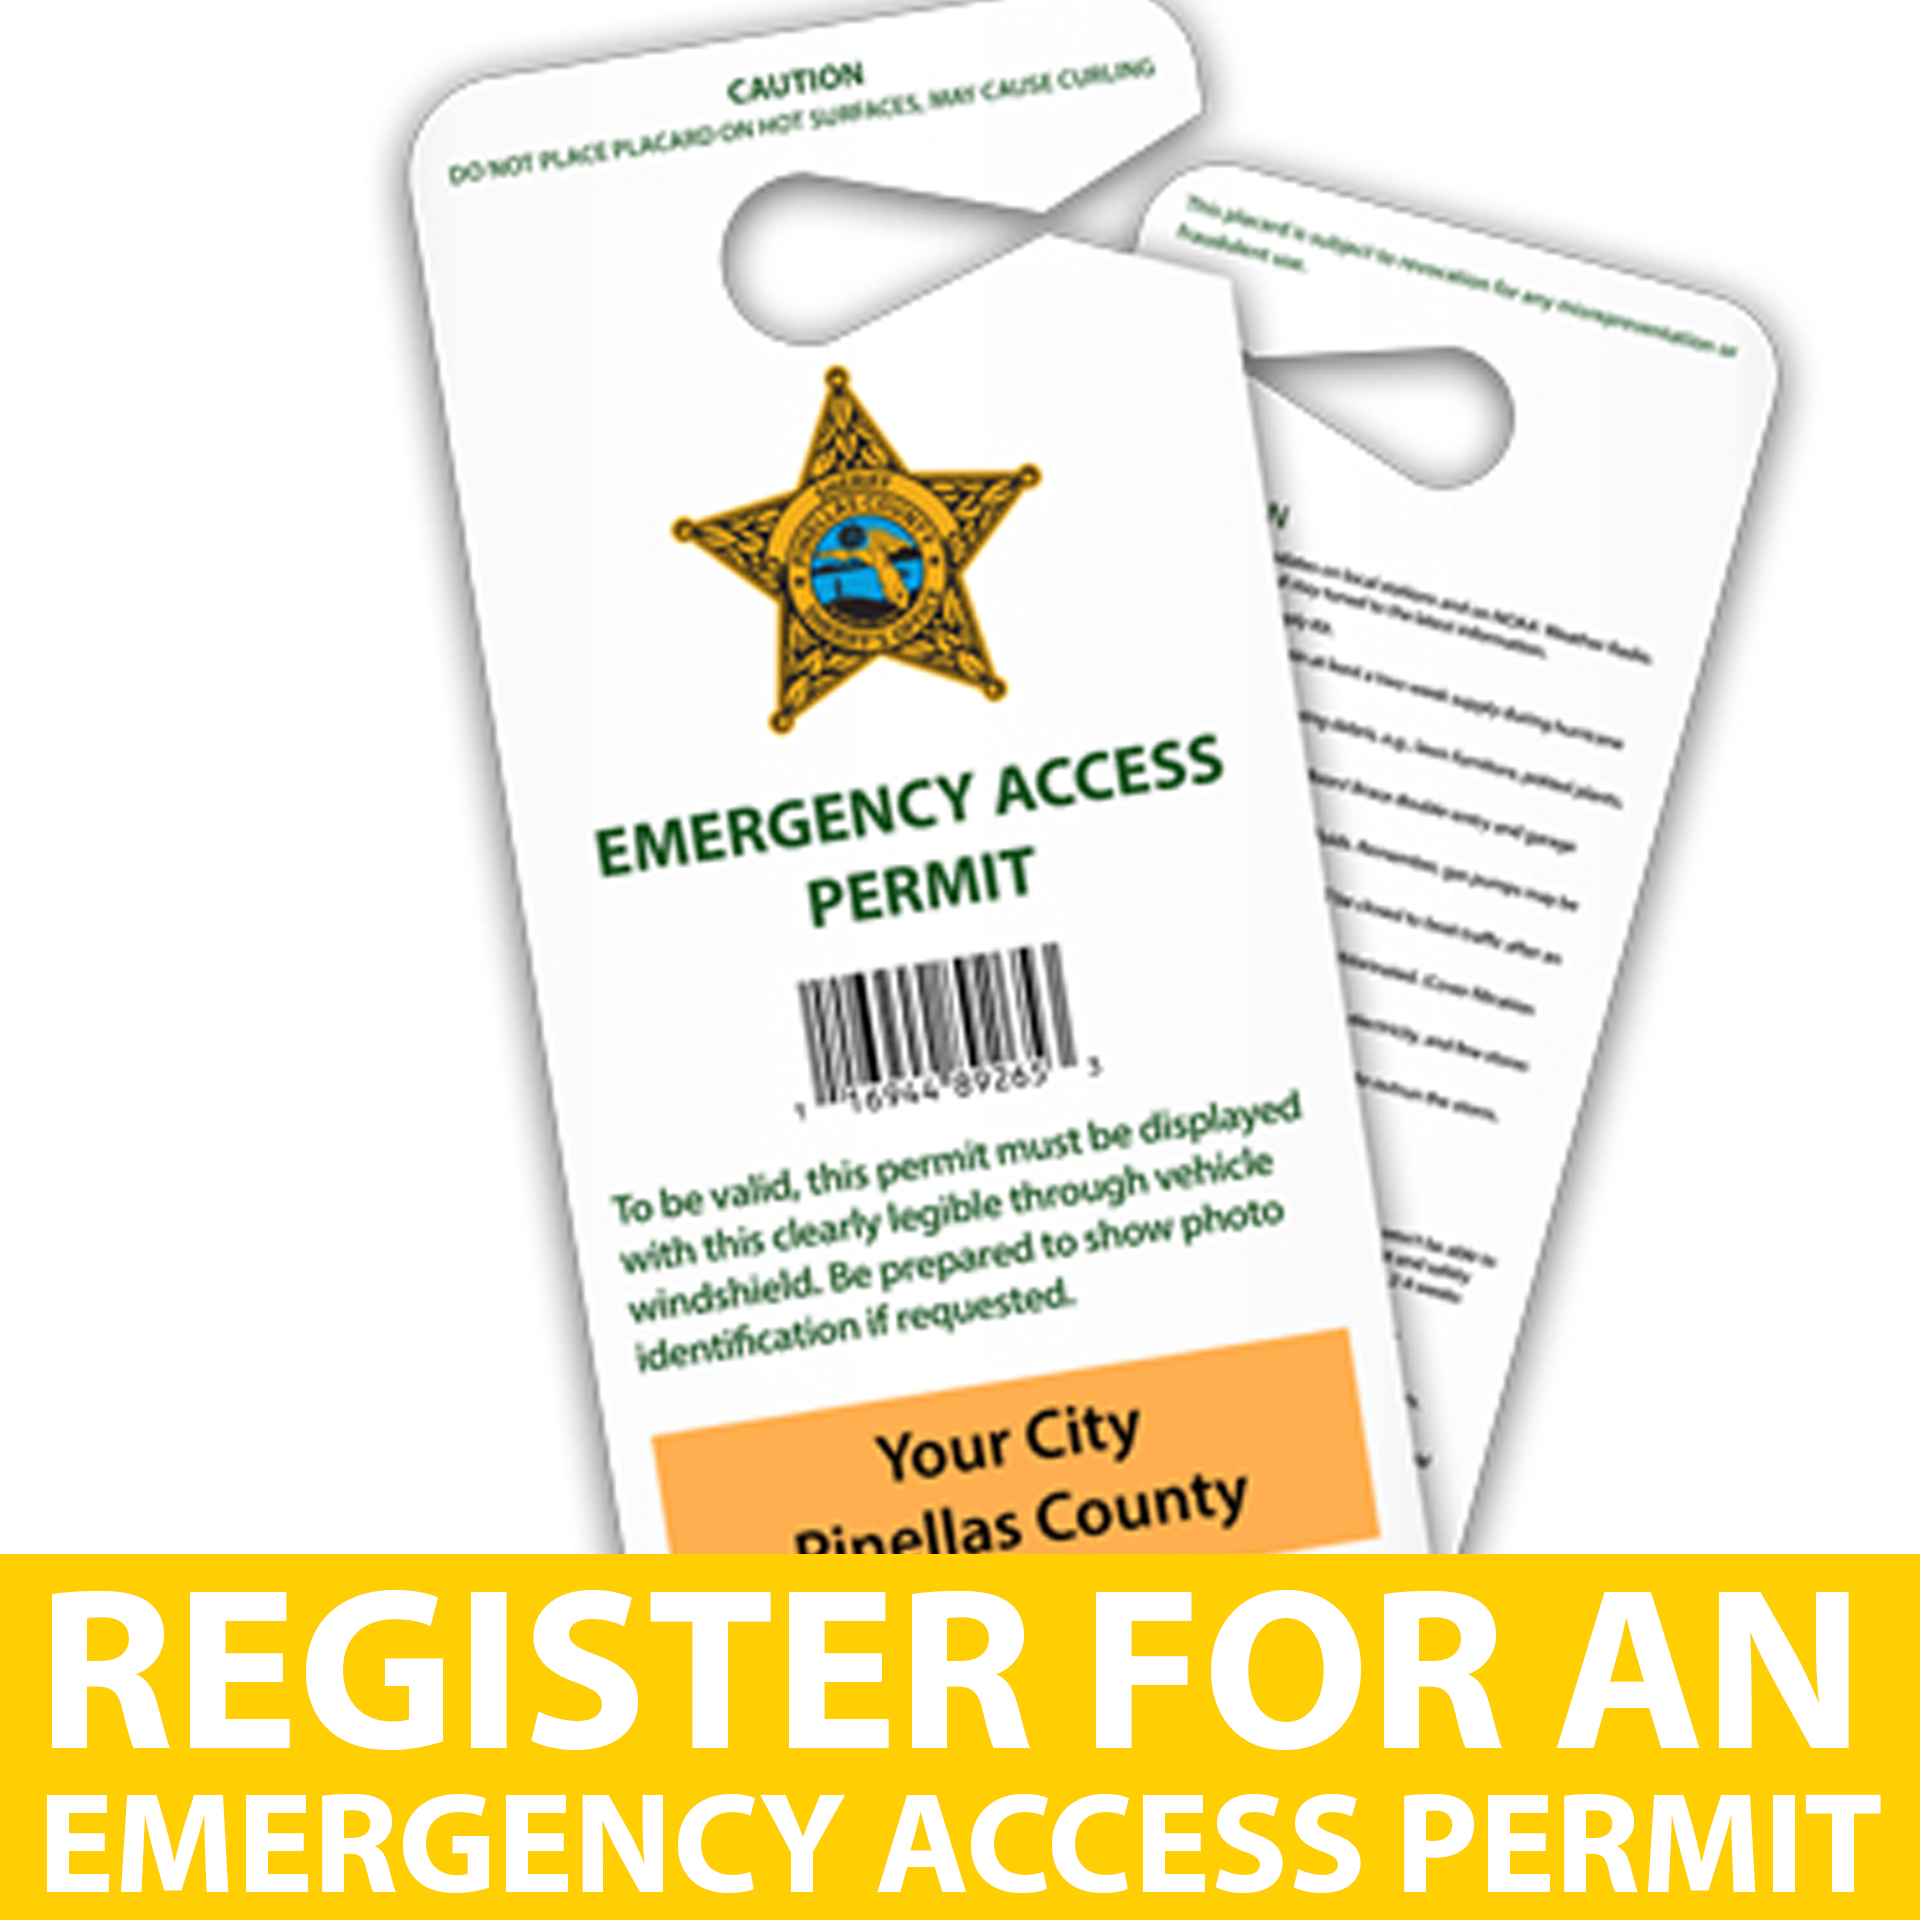 Register for an Emergency Access Permit with Pineallas County